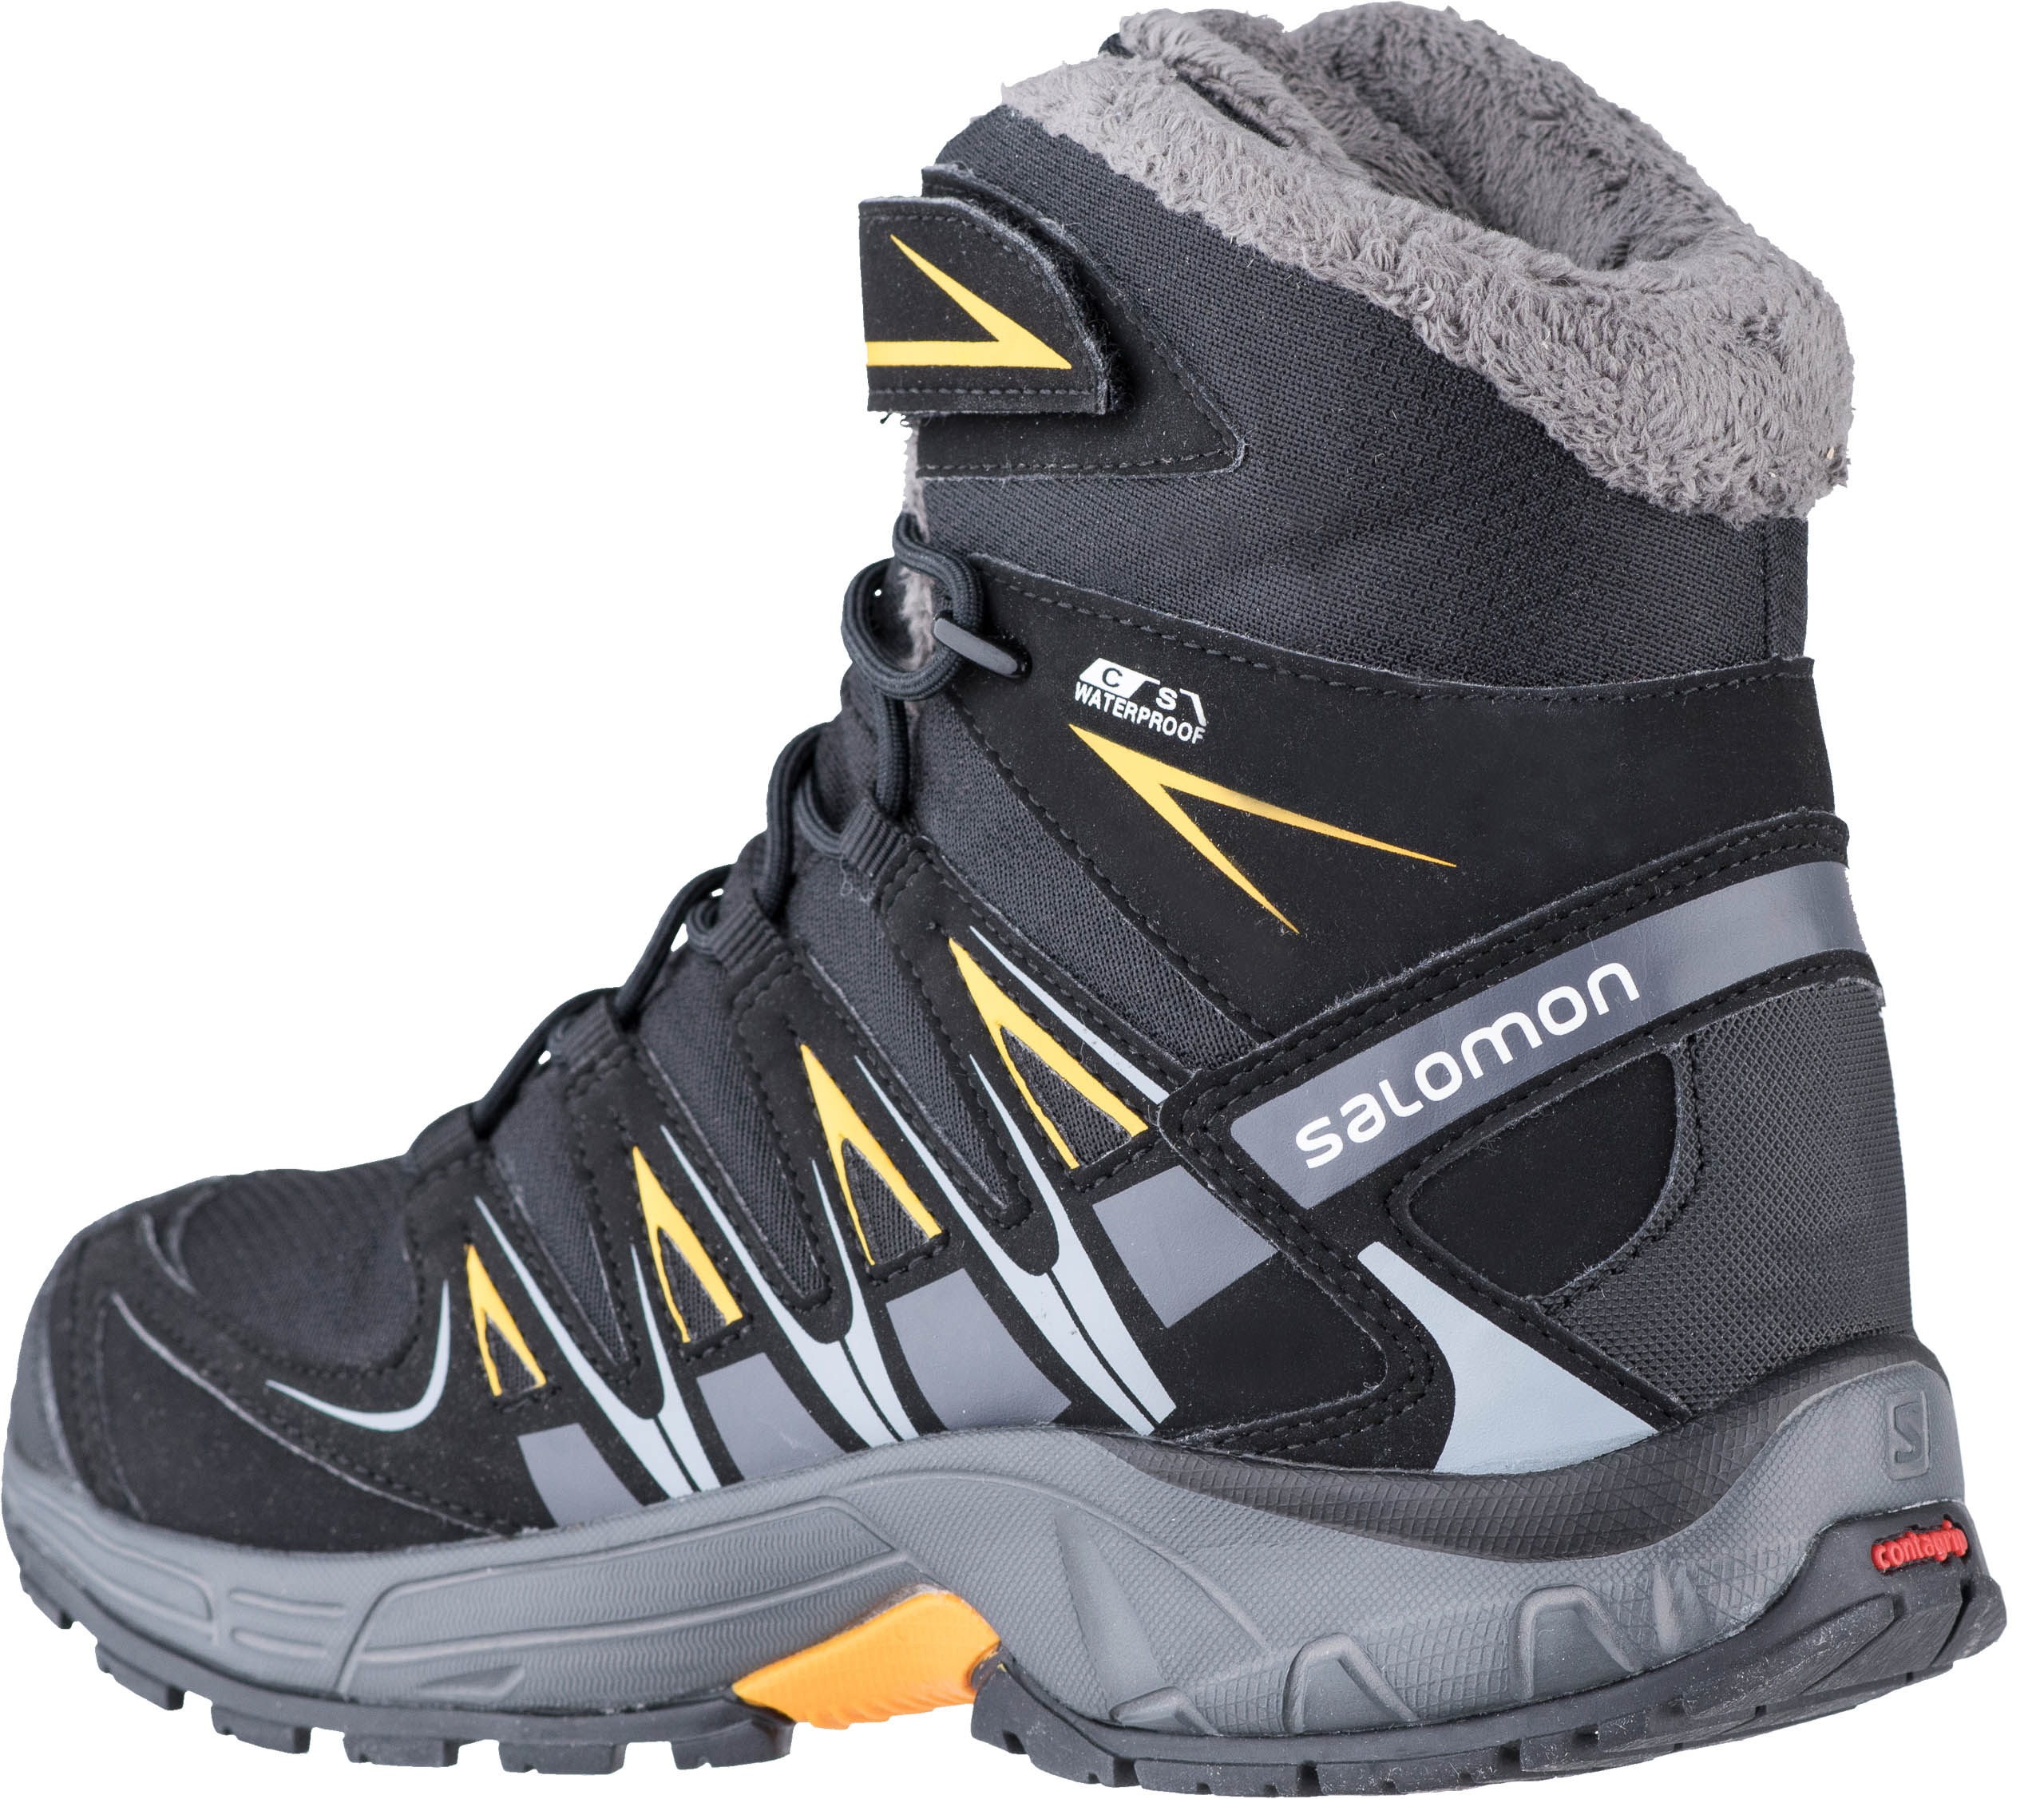 SALOMON XA Pro 3D Winter TS CSWP J Trekkingstiefel